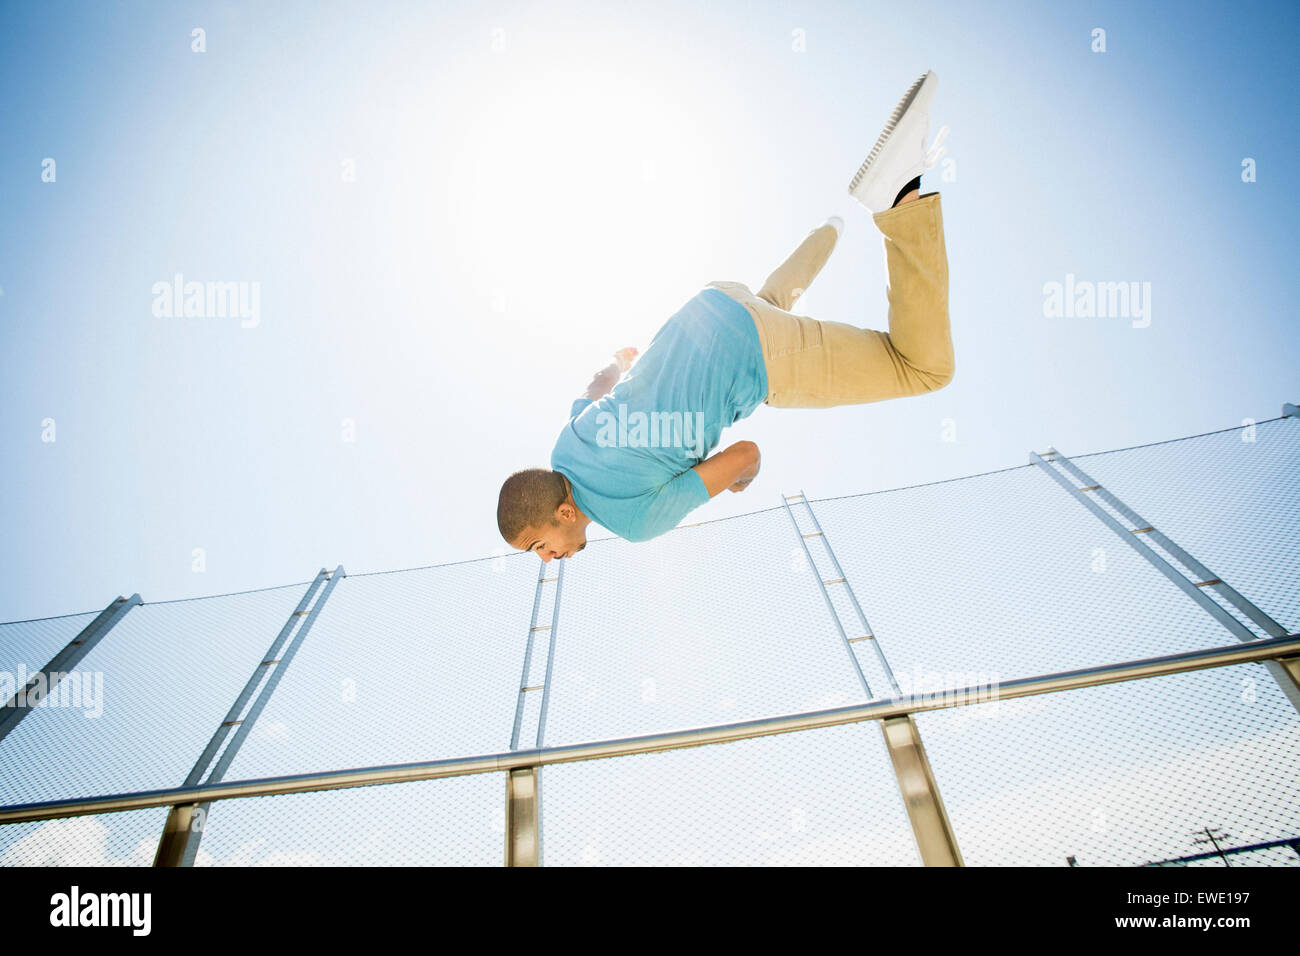 Young man somersaulting parcour parkour free running Stock Photo